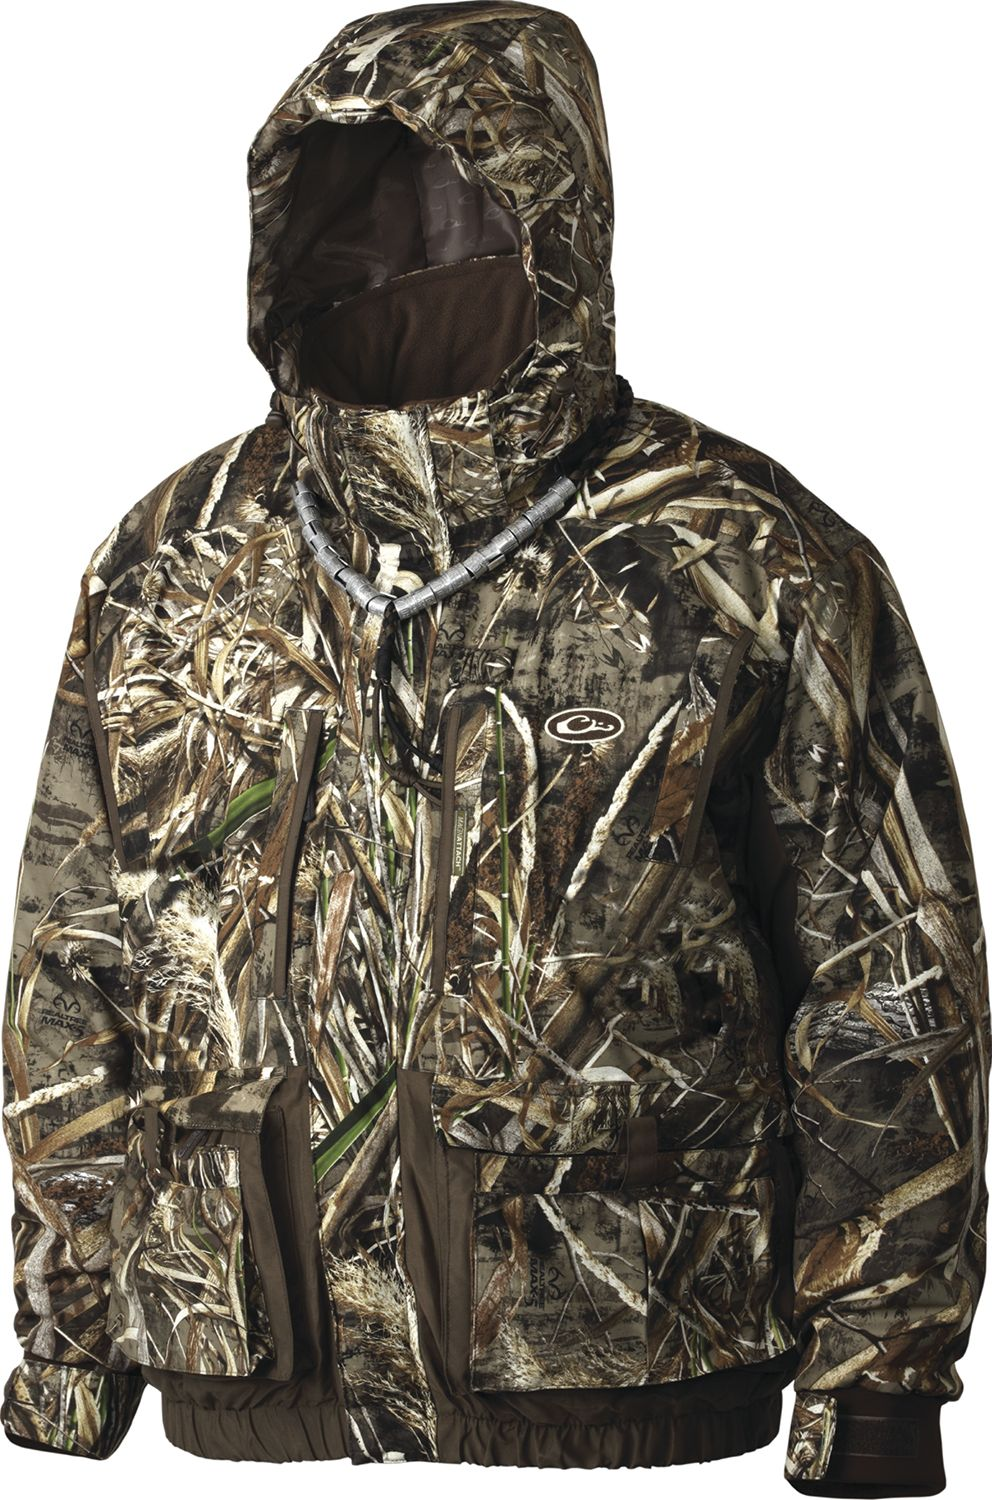 Drake Waterfowl Men's LST Eqwader 3-in-1 Wader Jacket 2.0, Size: XXL, Brown thumbnail